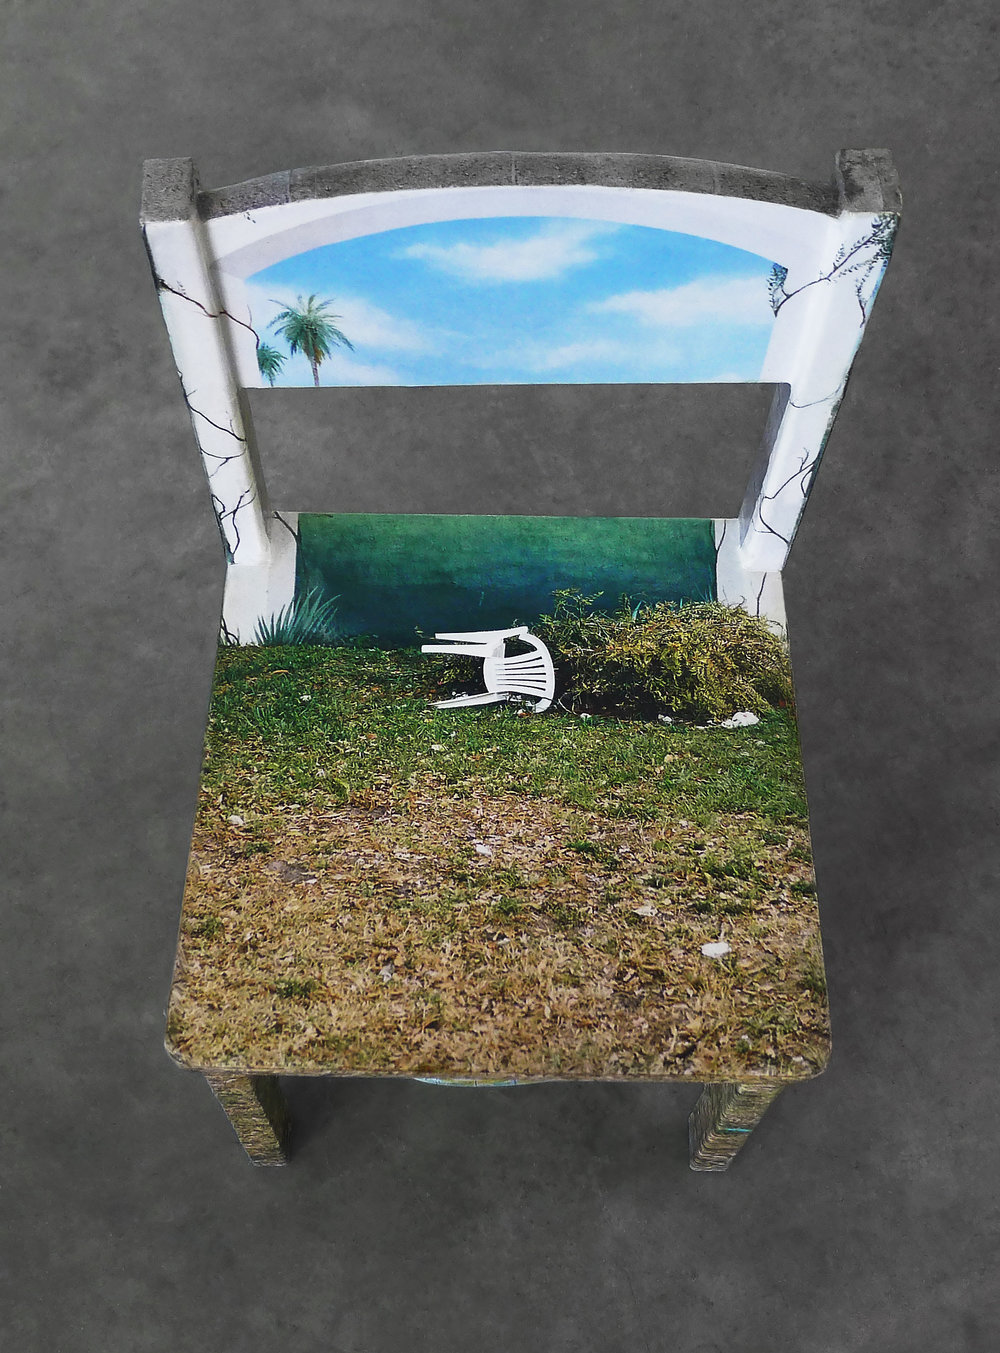 "Chair Mural II , detail, 2014, 11""x 11.5""x 21"" (28 cm x 29.2 cm x 53.3 cm), archival inkjet print, glue, wood chair, inflatable globe"